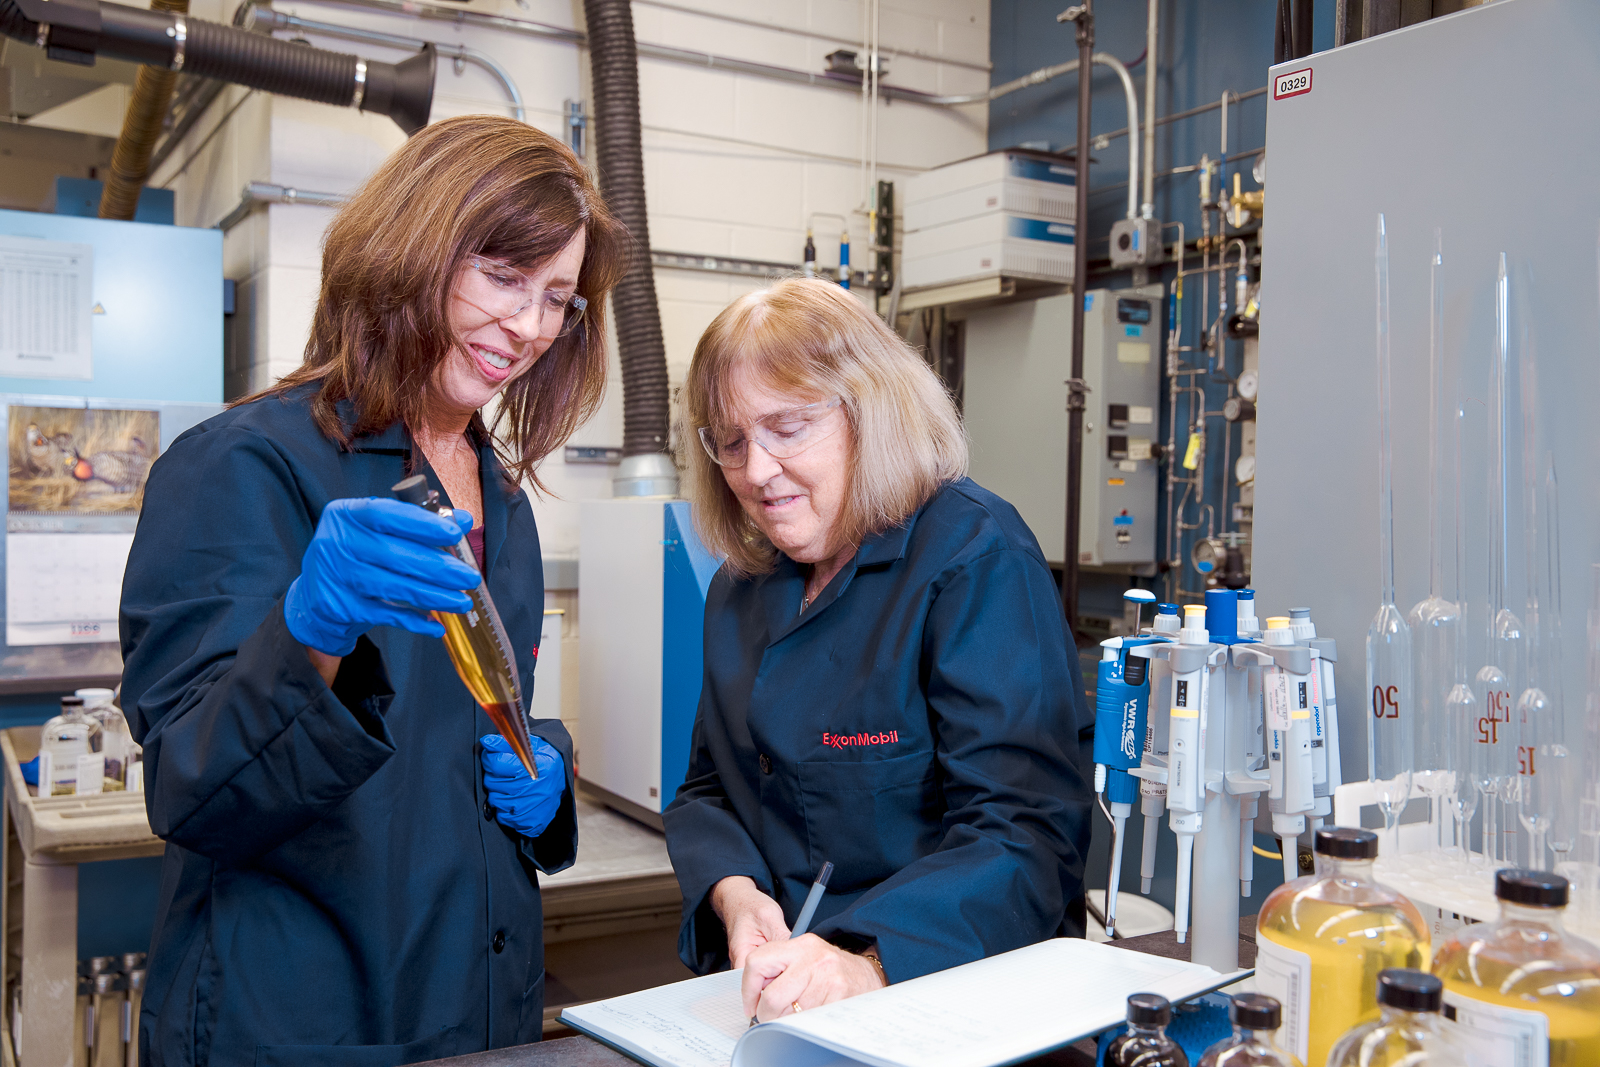 Barb Whittaker and Joan Axelrod worked as a team in the lab to create Synergy fuels.